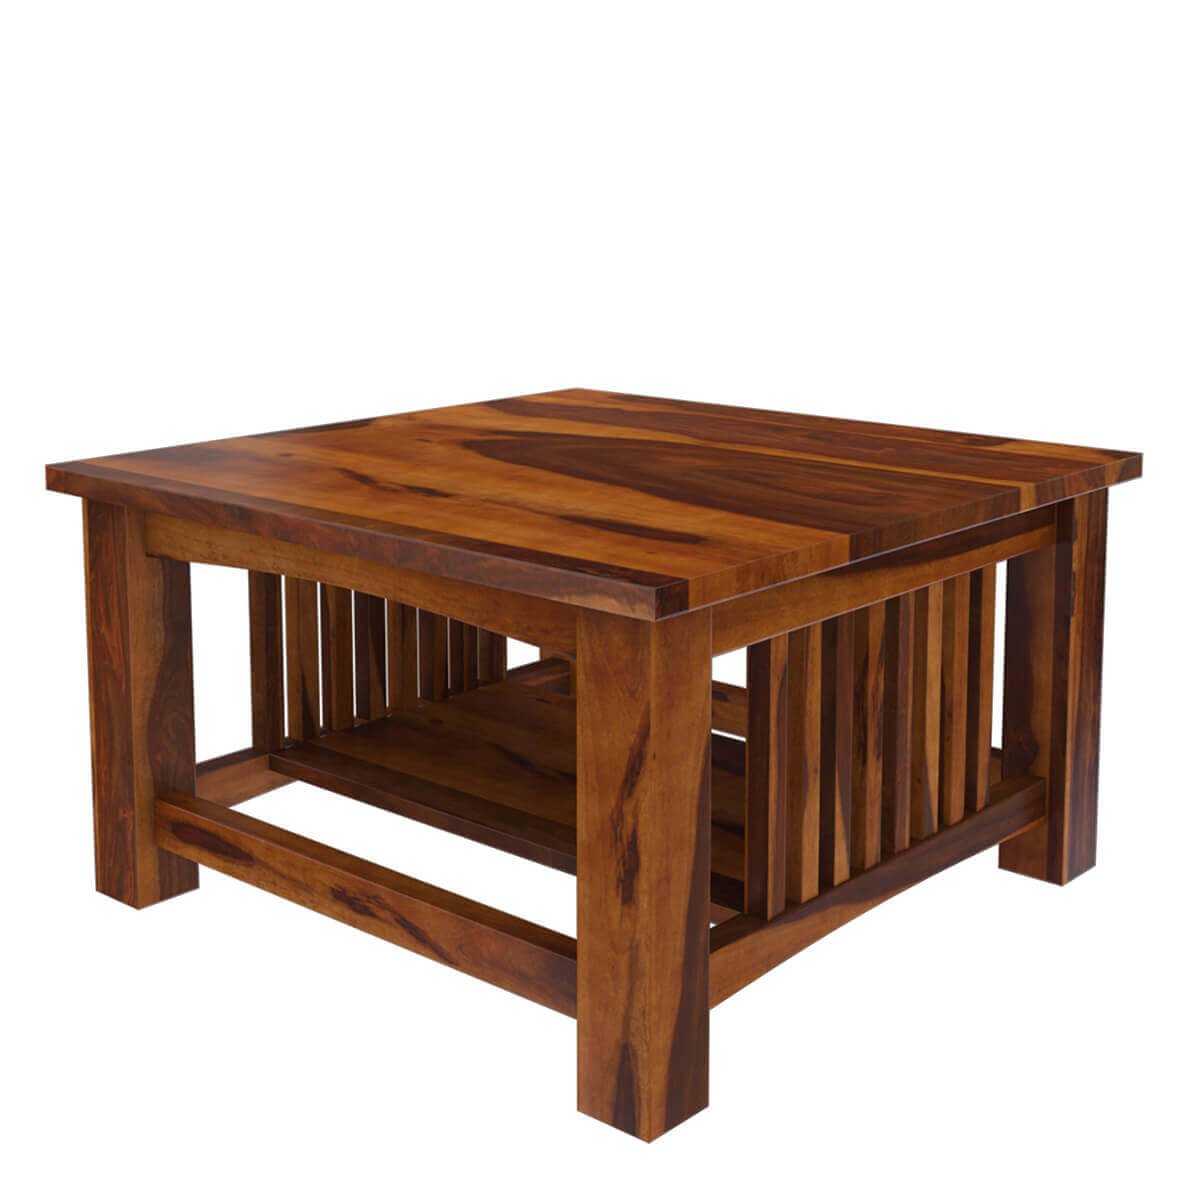 Rustic solid wood square coffee table furniture for Solid wood coffee table